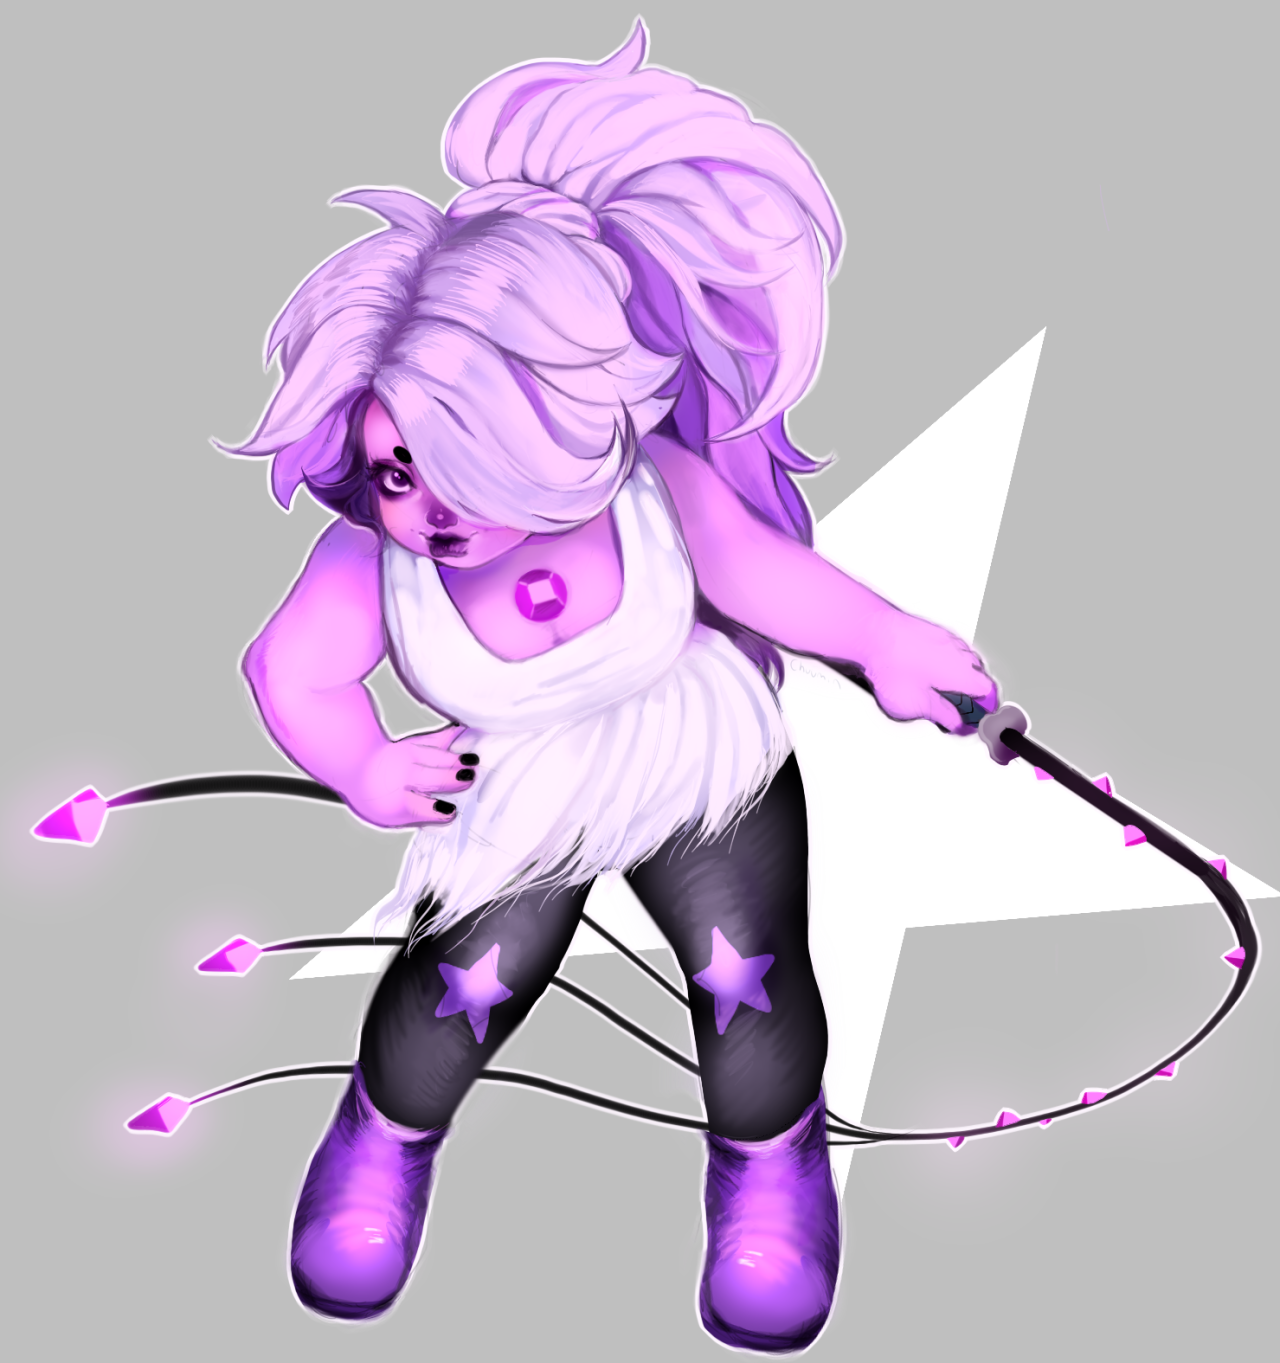 today's amethyst was super cute! transparent vers.